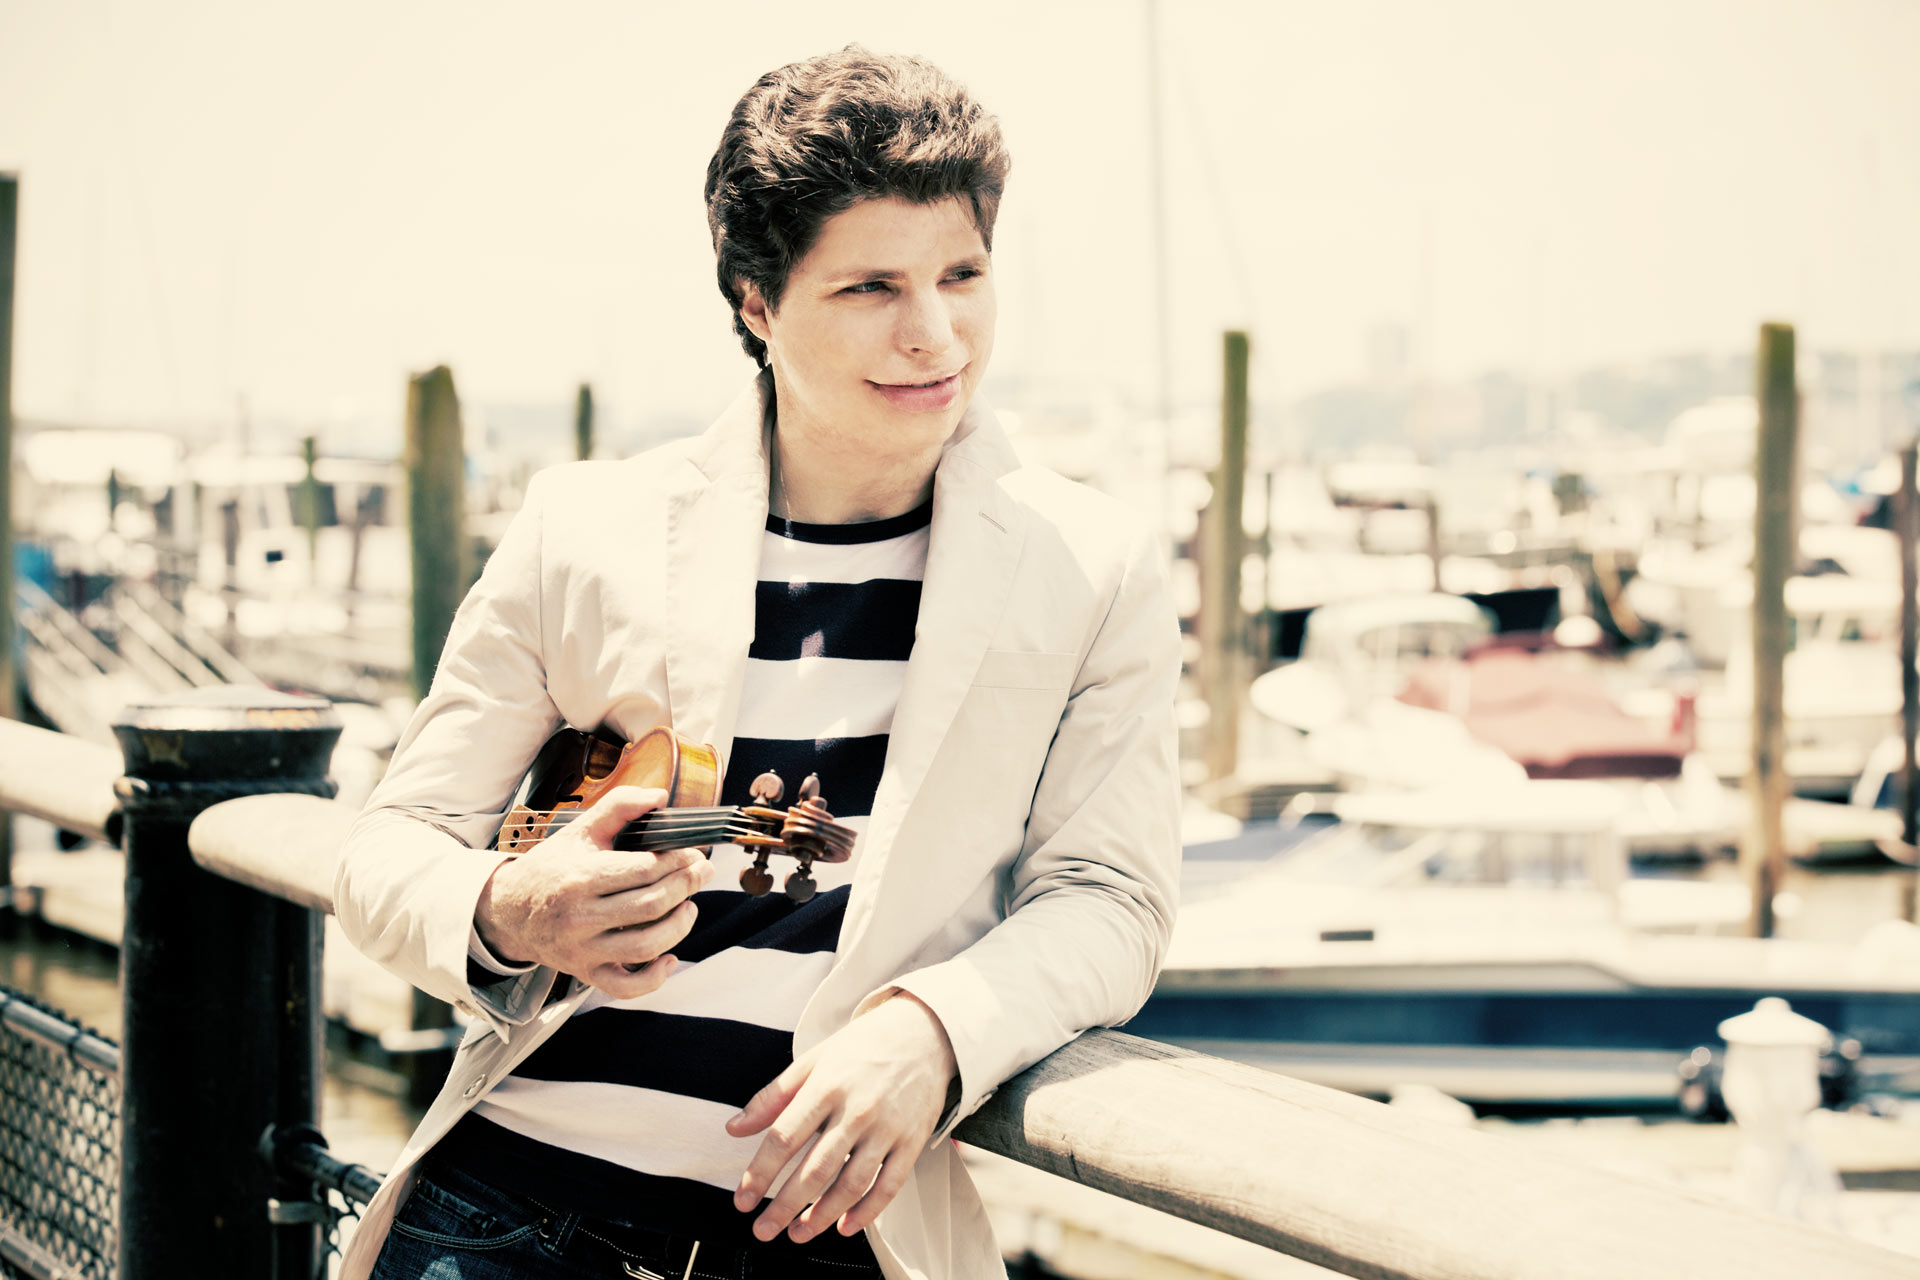 AUGUSTIN HADELICH, Violin, named Musical America's 2018 Instrumentalist of the Year. Photo: augustinhadelich.com